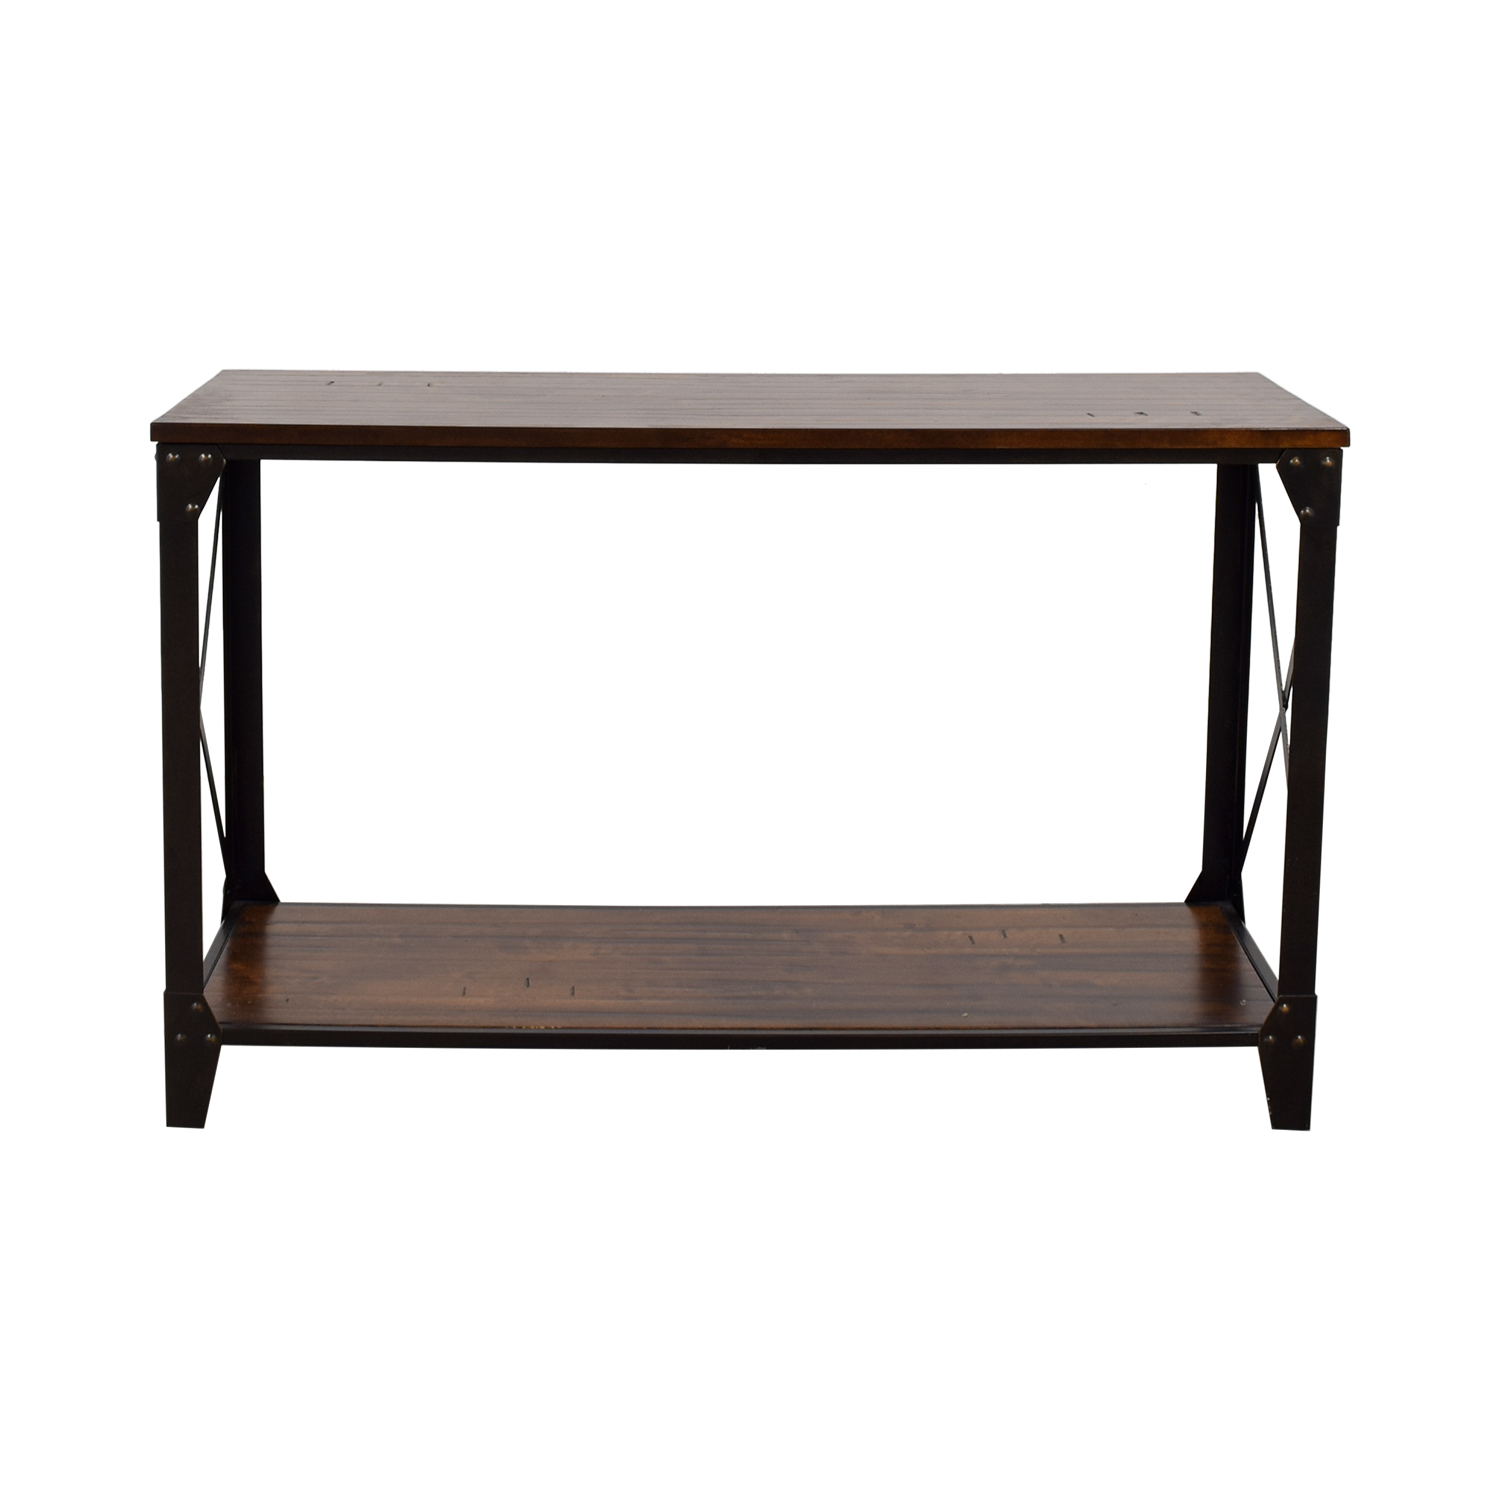 Metal Rustic Wooden Console Discount